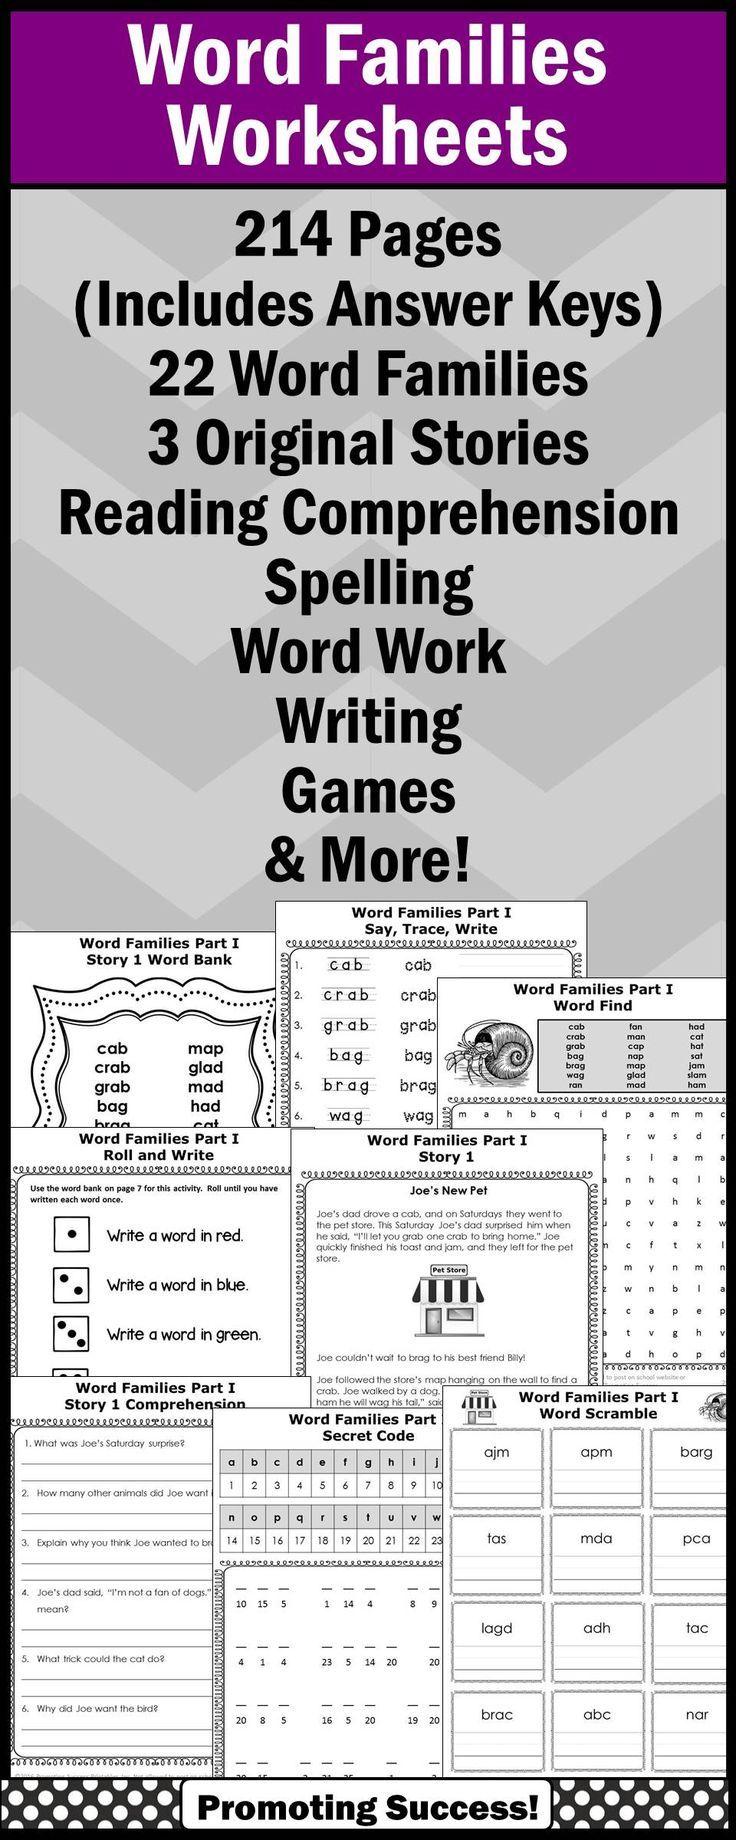 Worksheet Words That Rhyme With Bell 1000 images about kindergarten readiness on pinterest group word families activities in this 200 page packet you will receive tons of